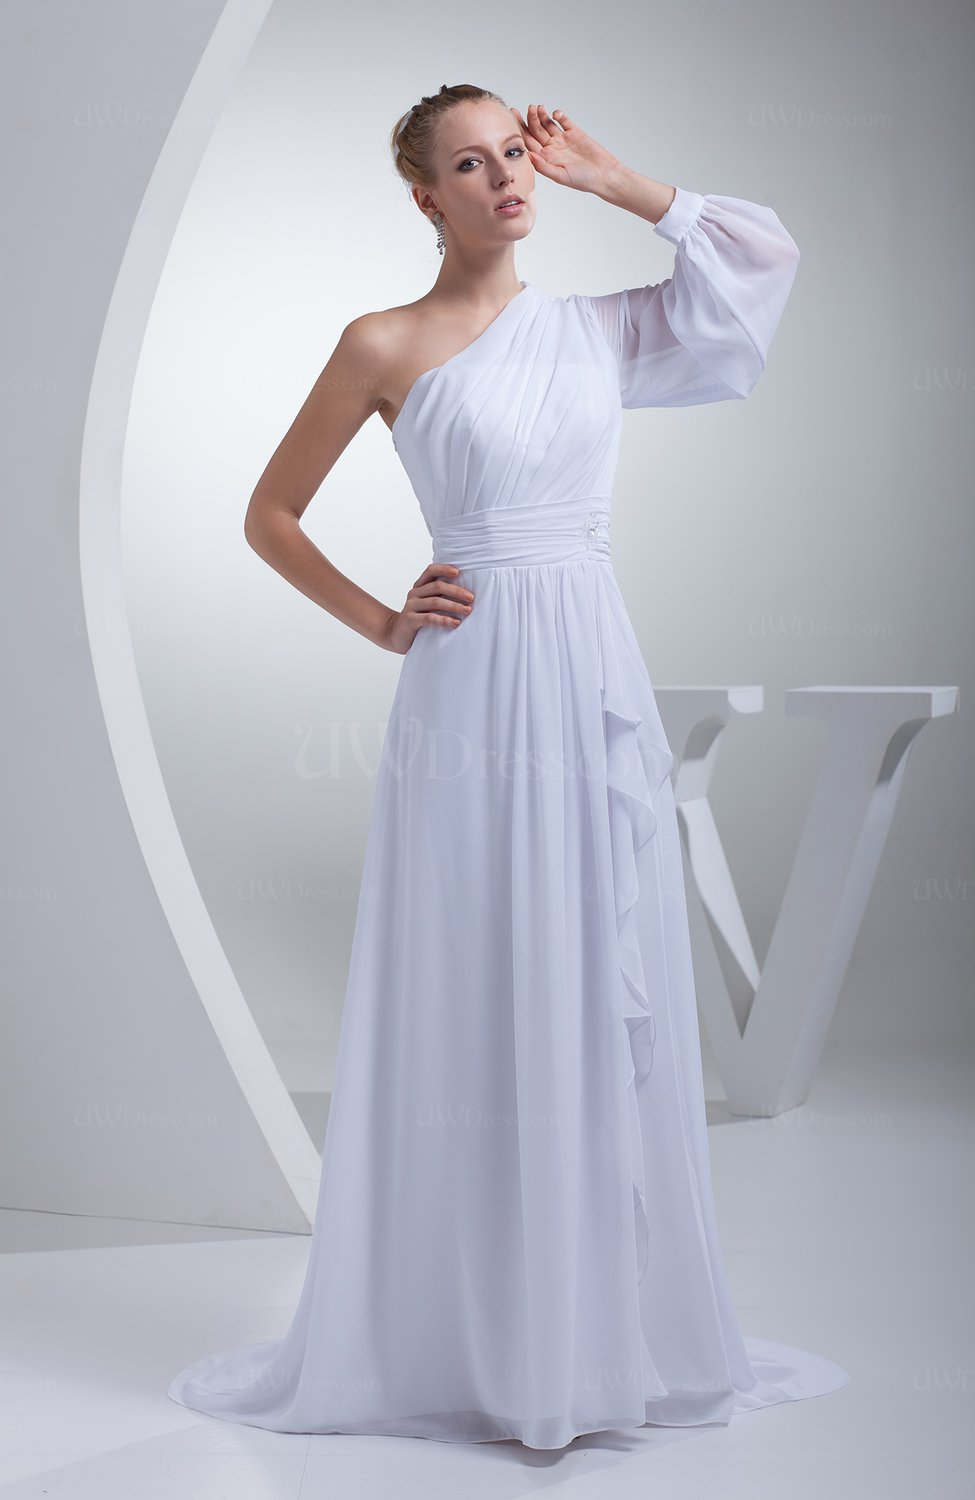 White Classic Outdoor Long Sleeve Half Backless Chiffon